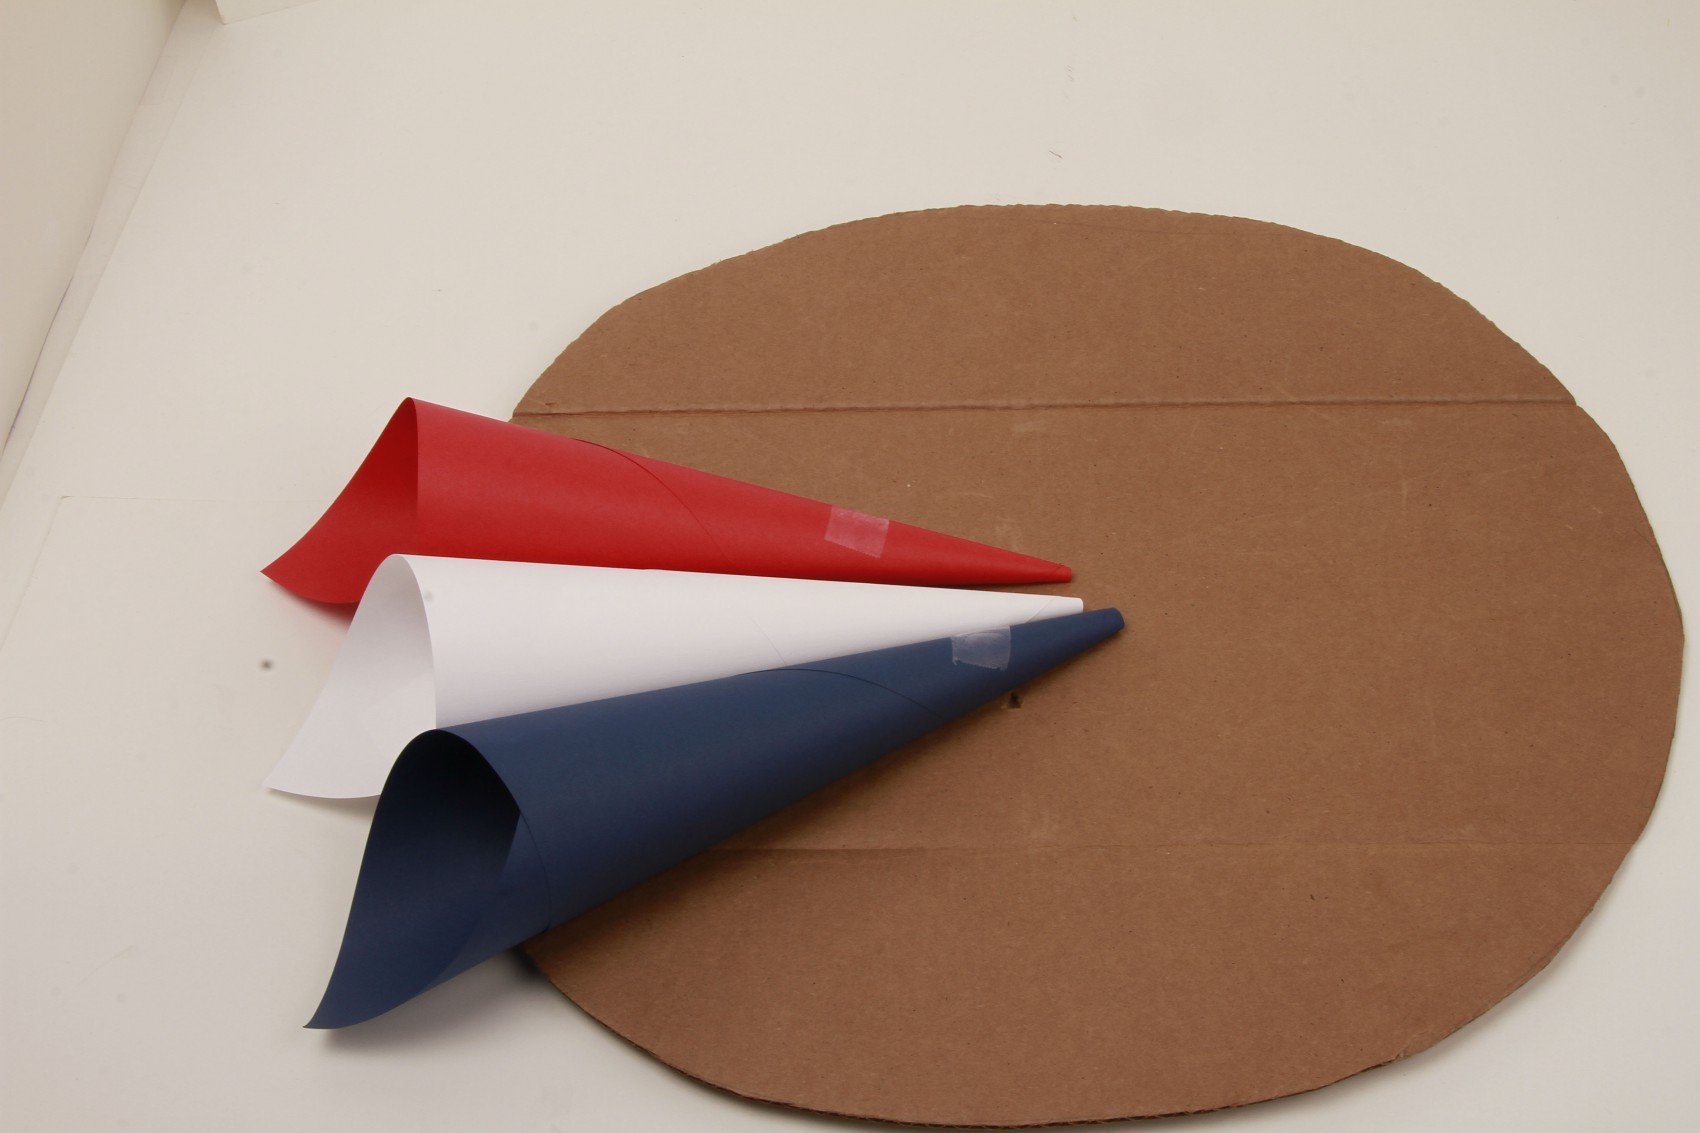 red, white, blue paper cones taped to cardboard circle